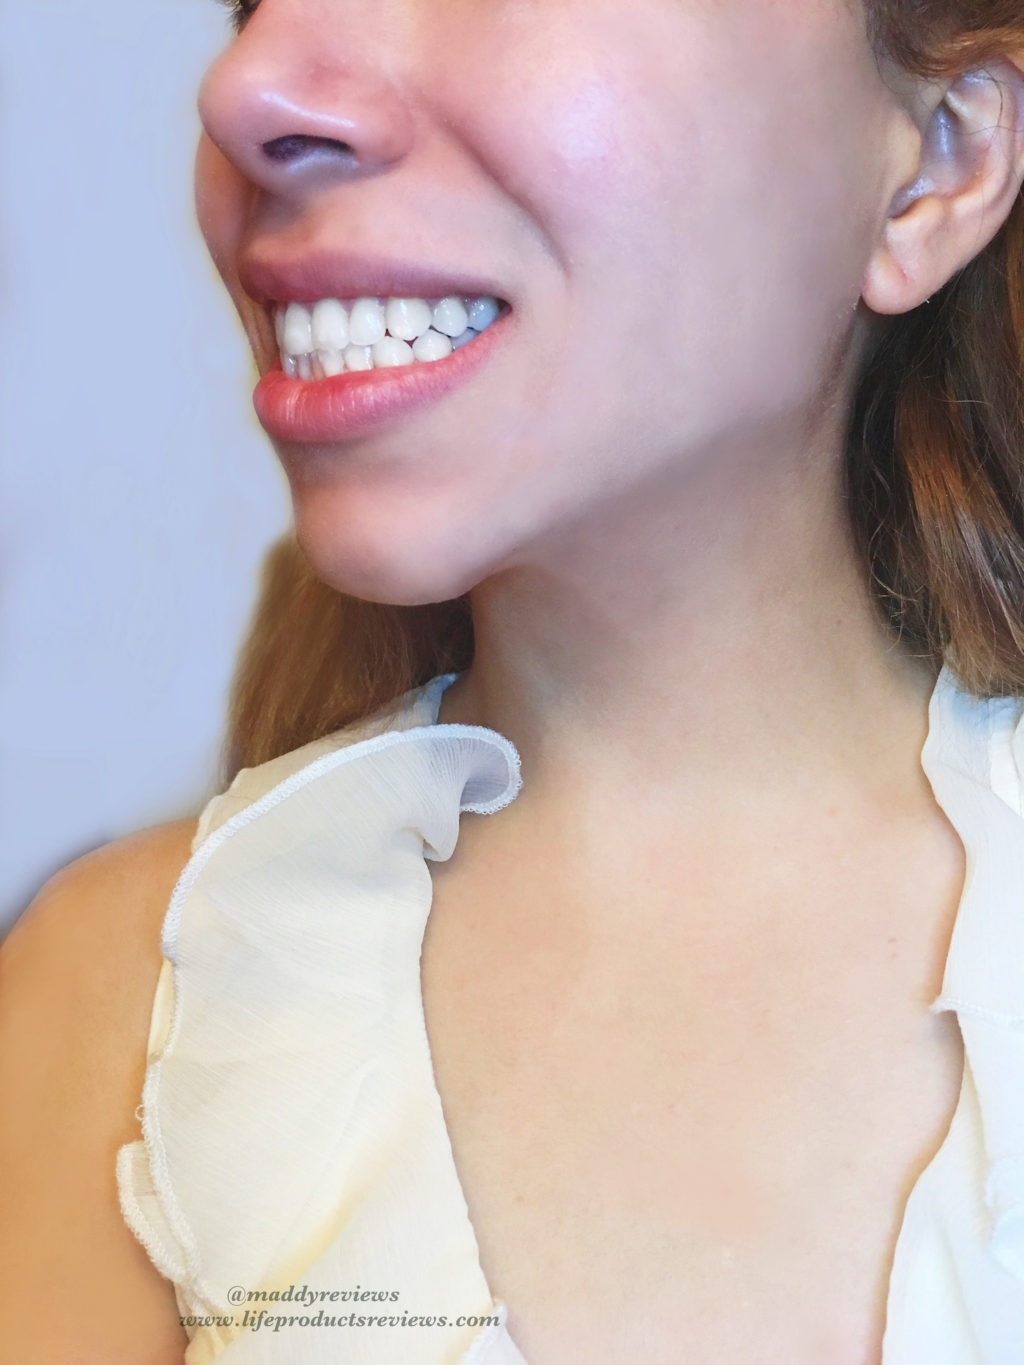 After-yellow-stain-teeth-results-side-smile-brilliant-pearly-whites-whitening-effect